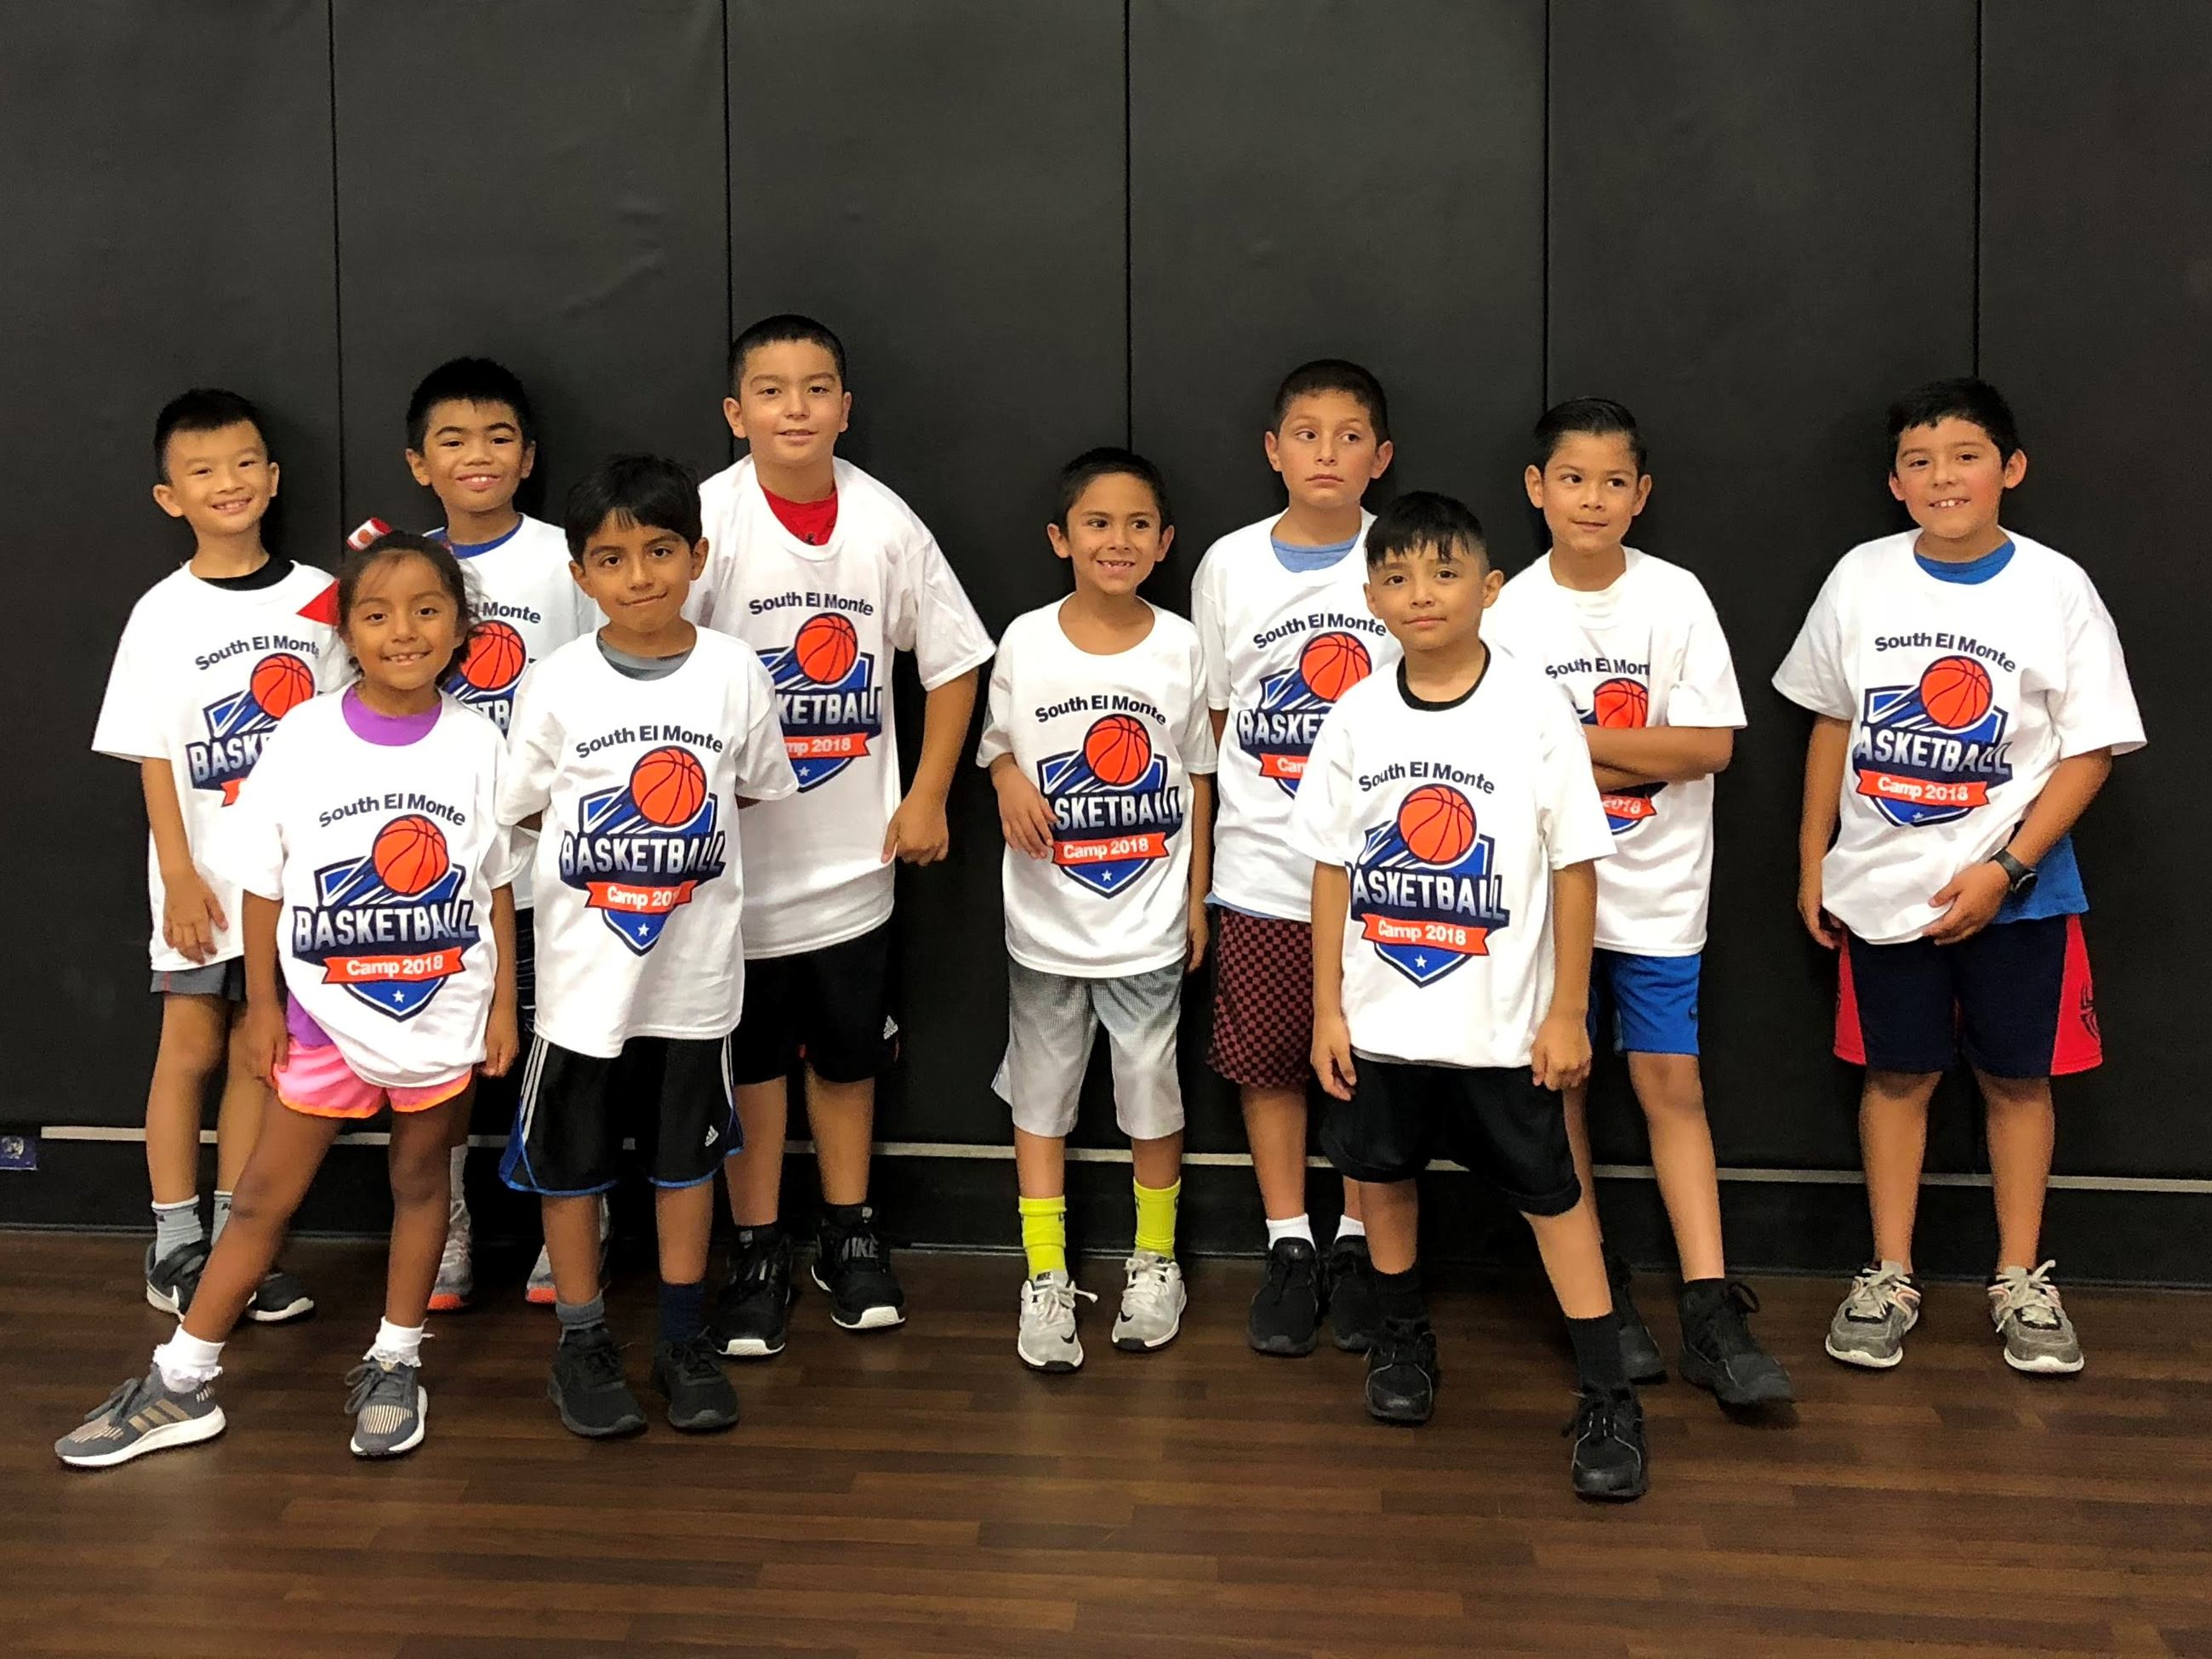 Youth Summer Basketball Camp Team